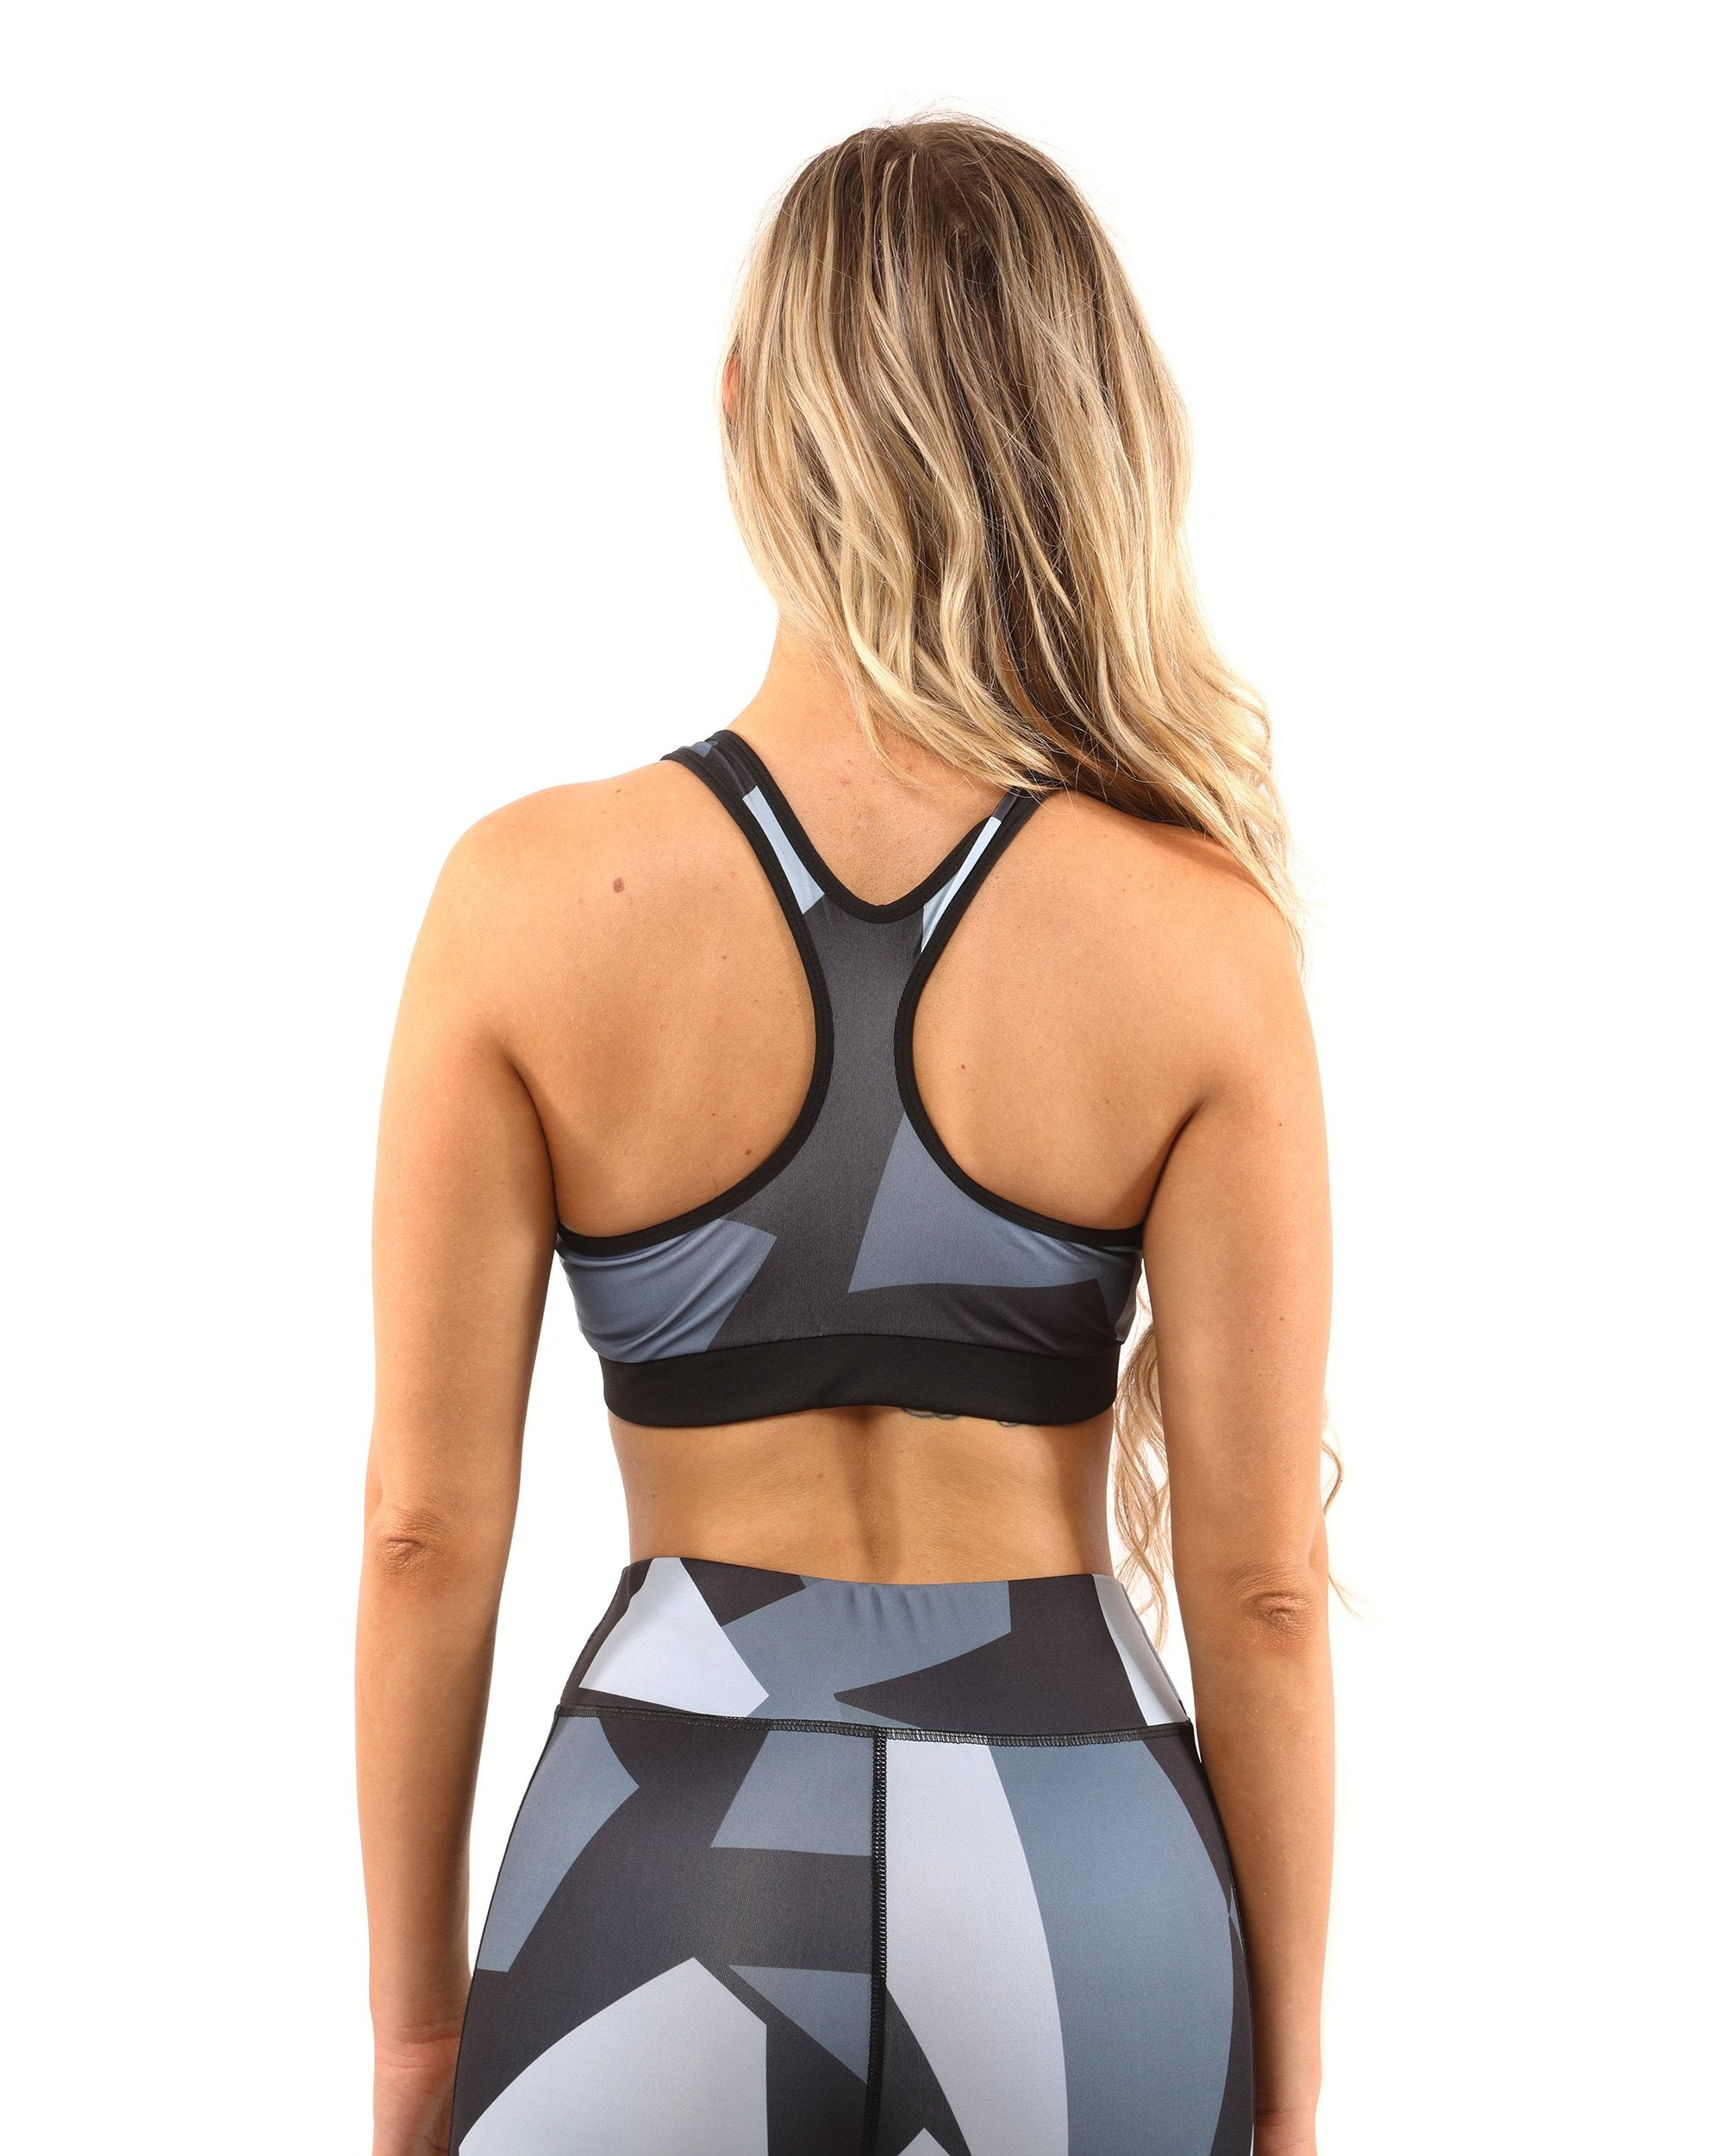 Bondi Sports Bra - Black/Grey - Chic Athletics